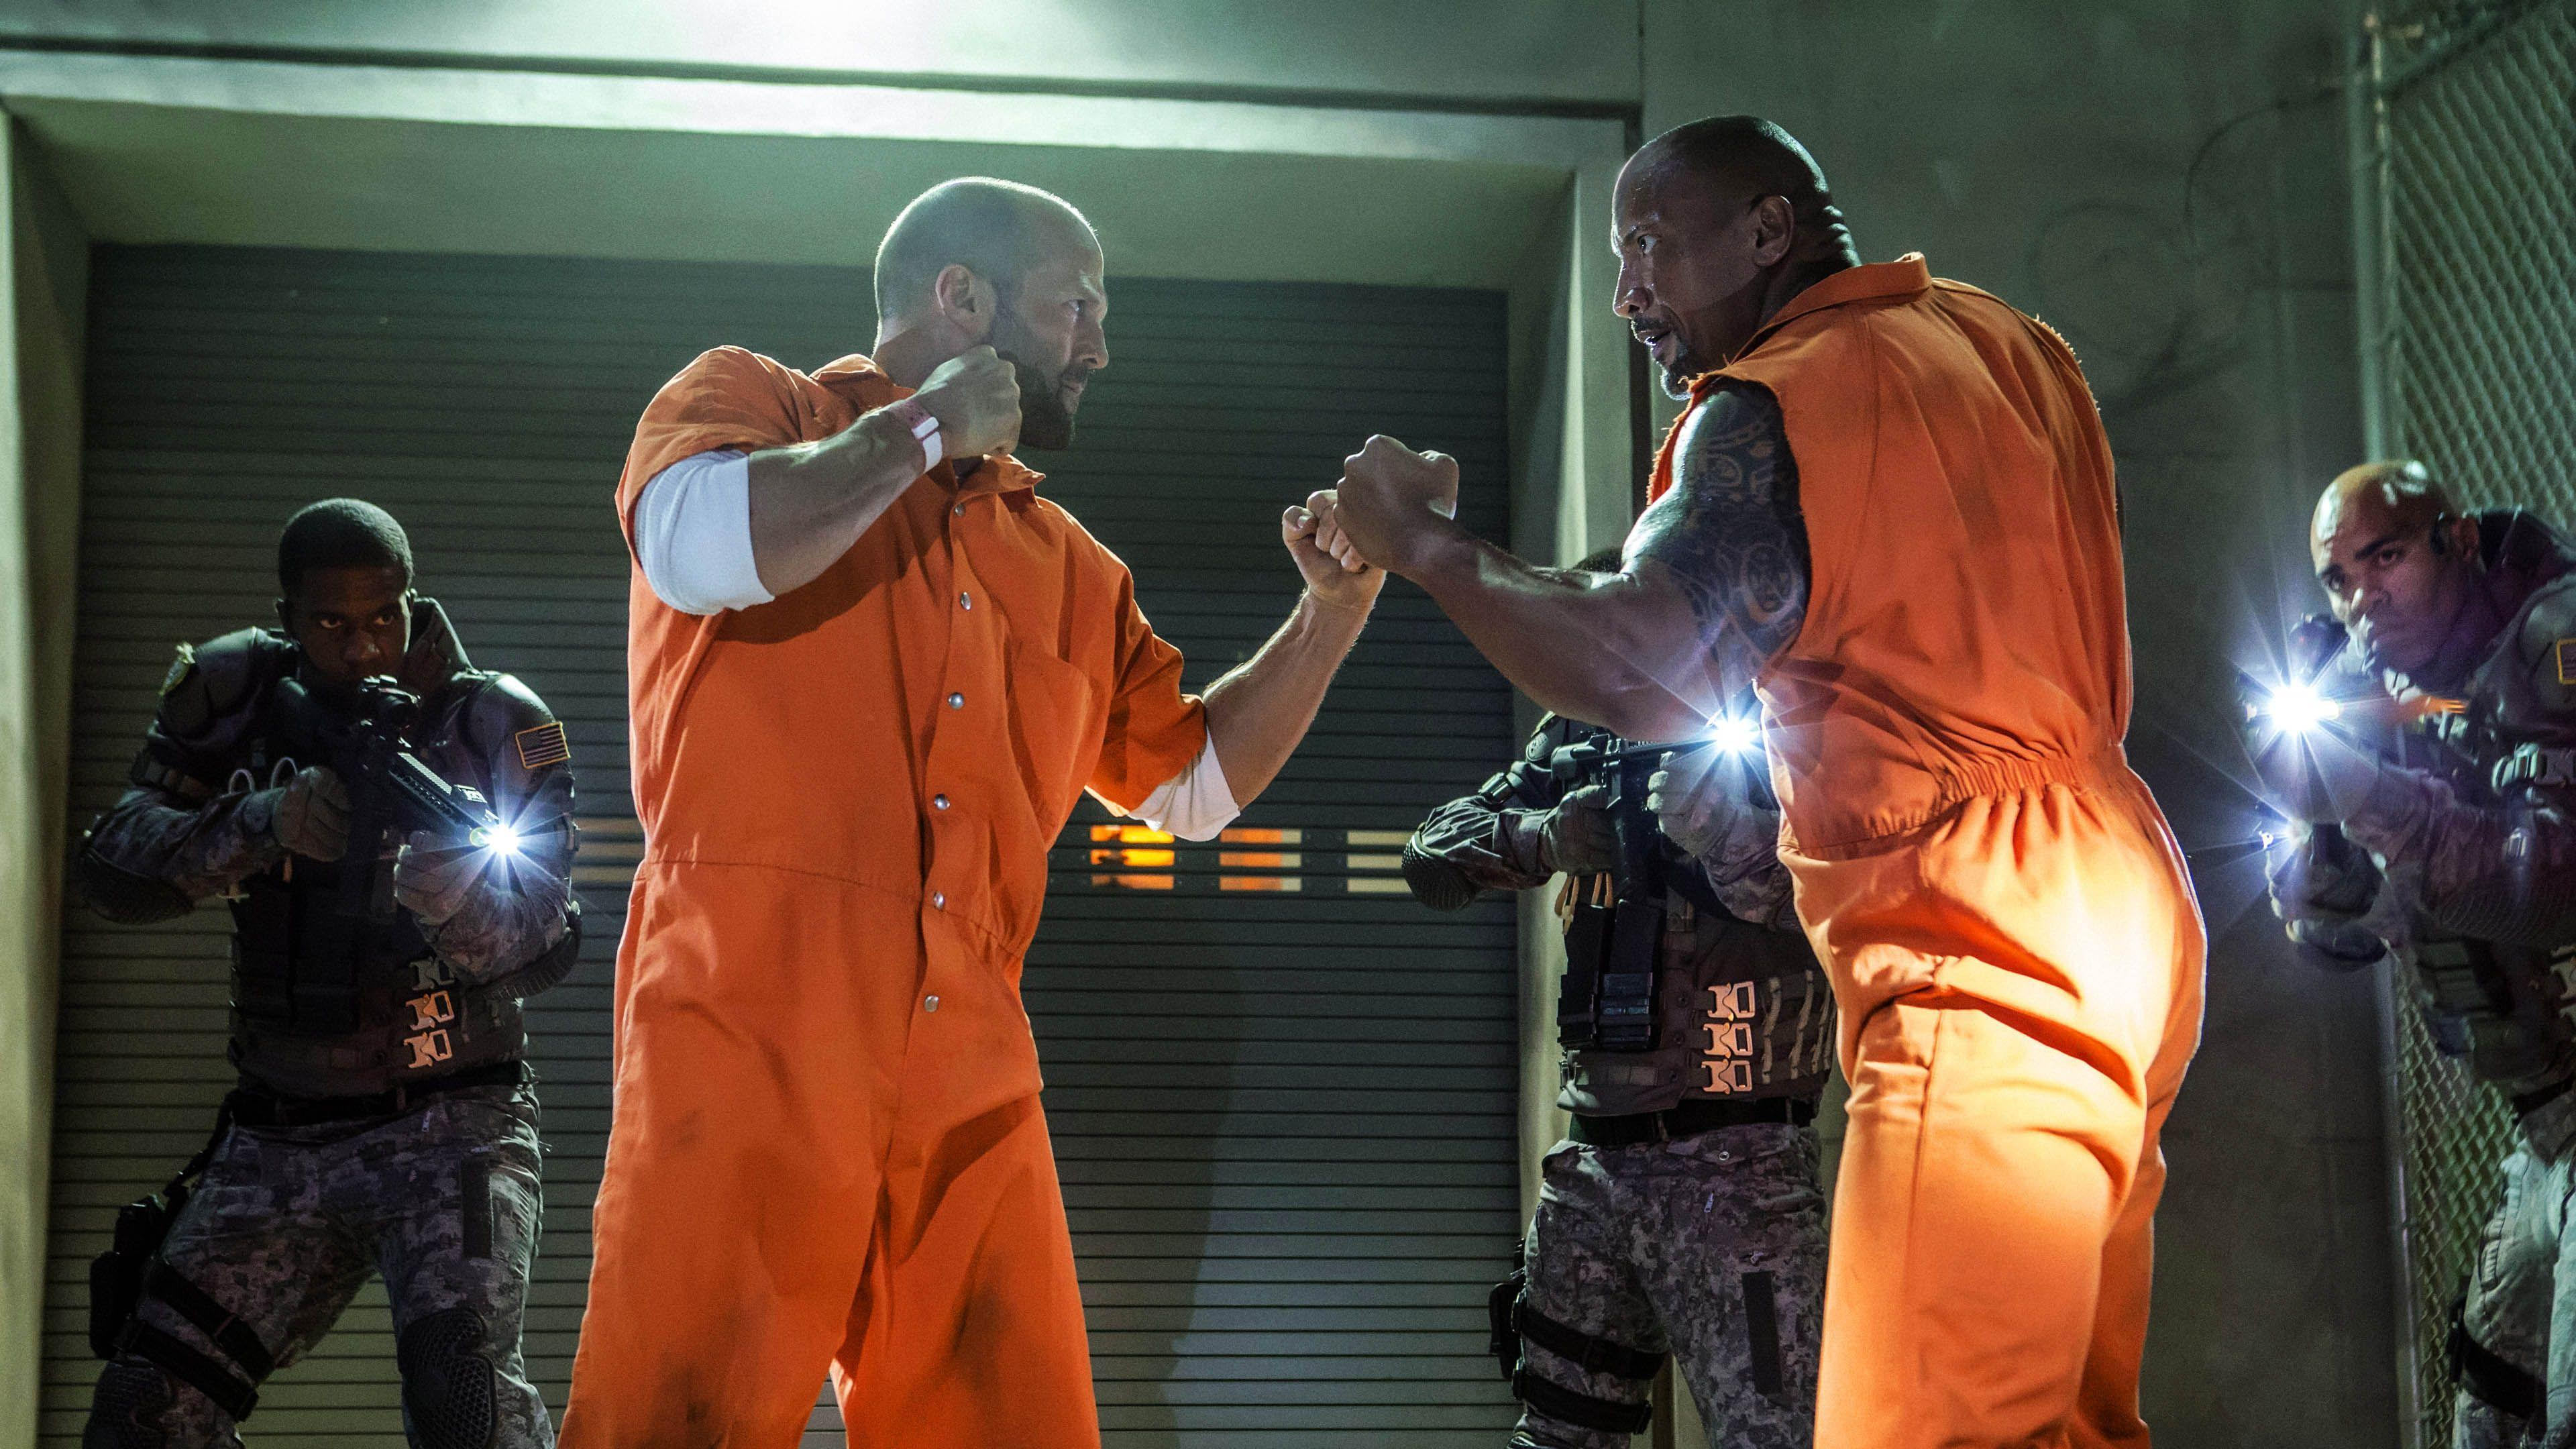 Jason Statham & Dwayne Johnson - The Fate of the Furious (Fast ...